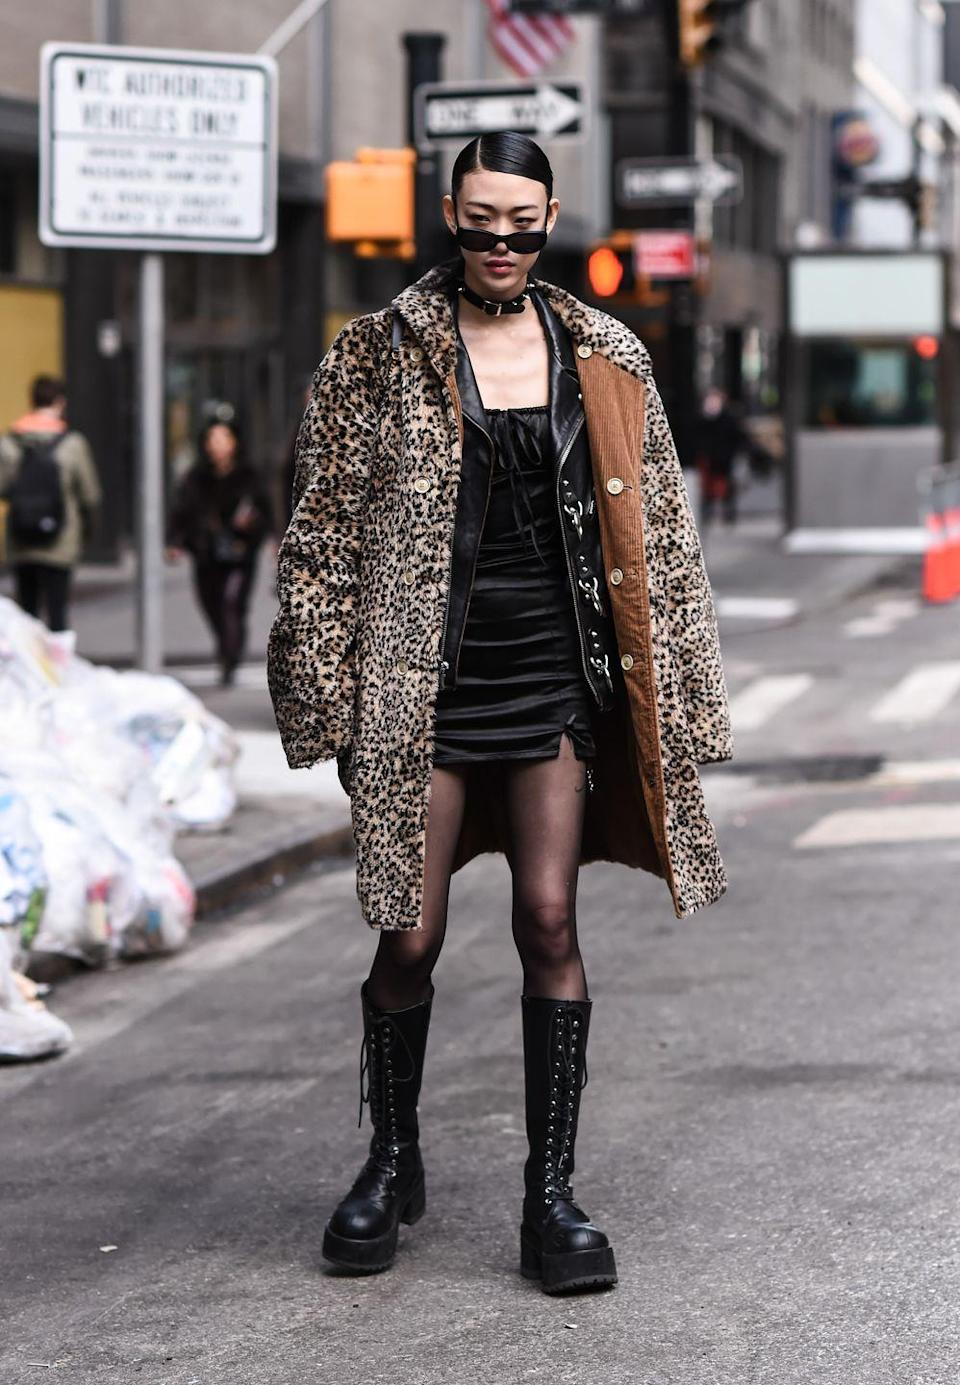 <p>Hot Topic shoppers, rejoice. In 2021, we're embracing the return of all thing '90s punk, with chokers, latex, and combat boots. <br><br></p>